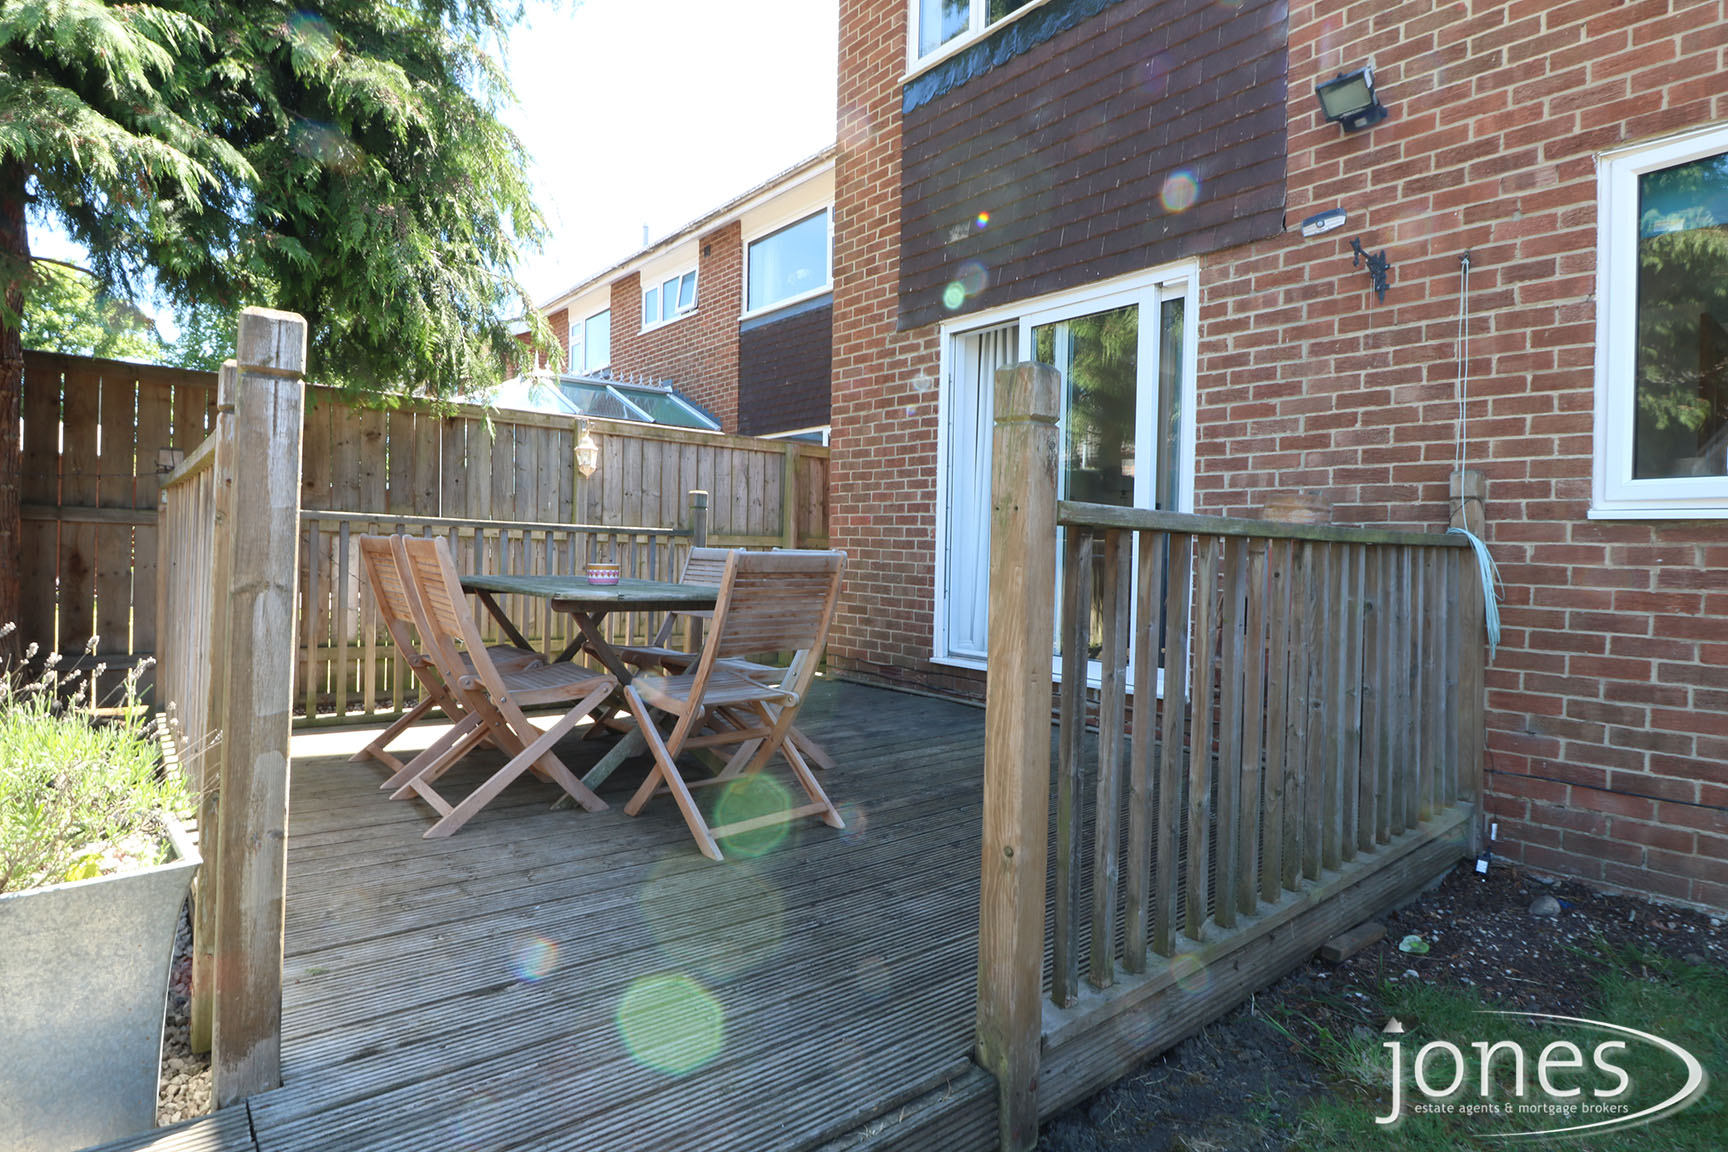 Home for Sale Let - Photo 19 Kielder Drive,Darlington,DL1 2BD